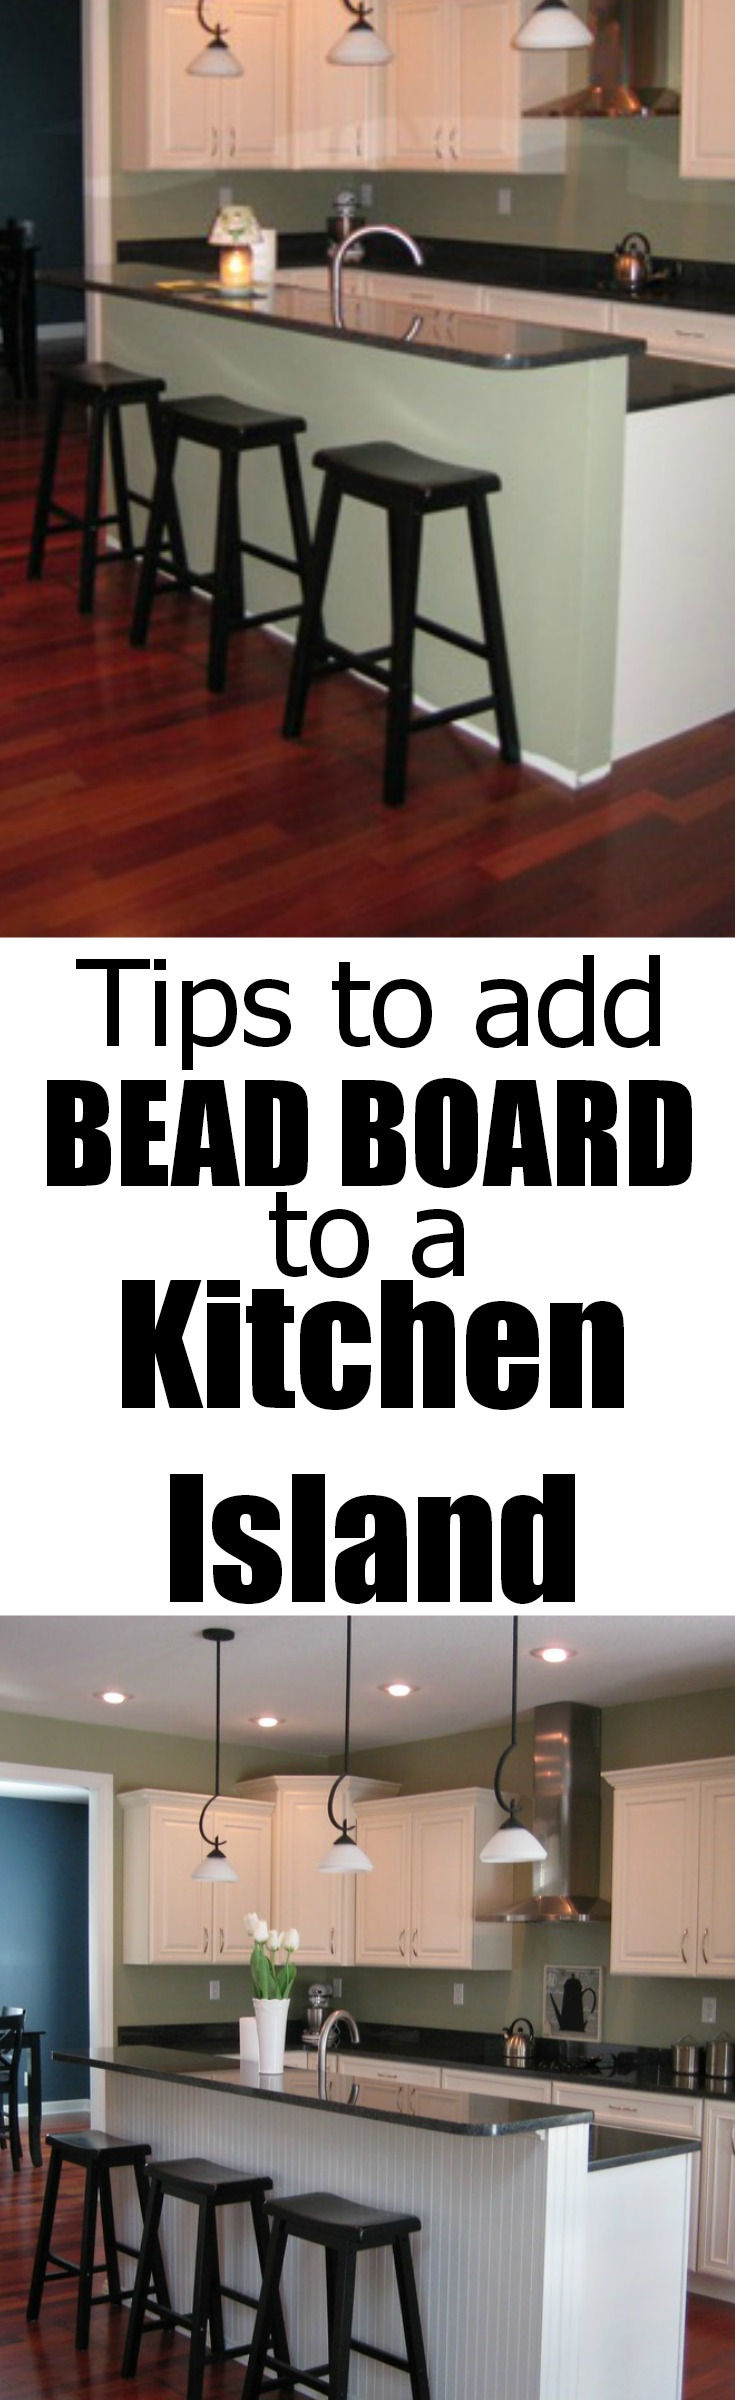 Tips to add bead board to a kitchen island!.jpg